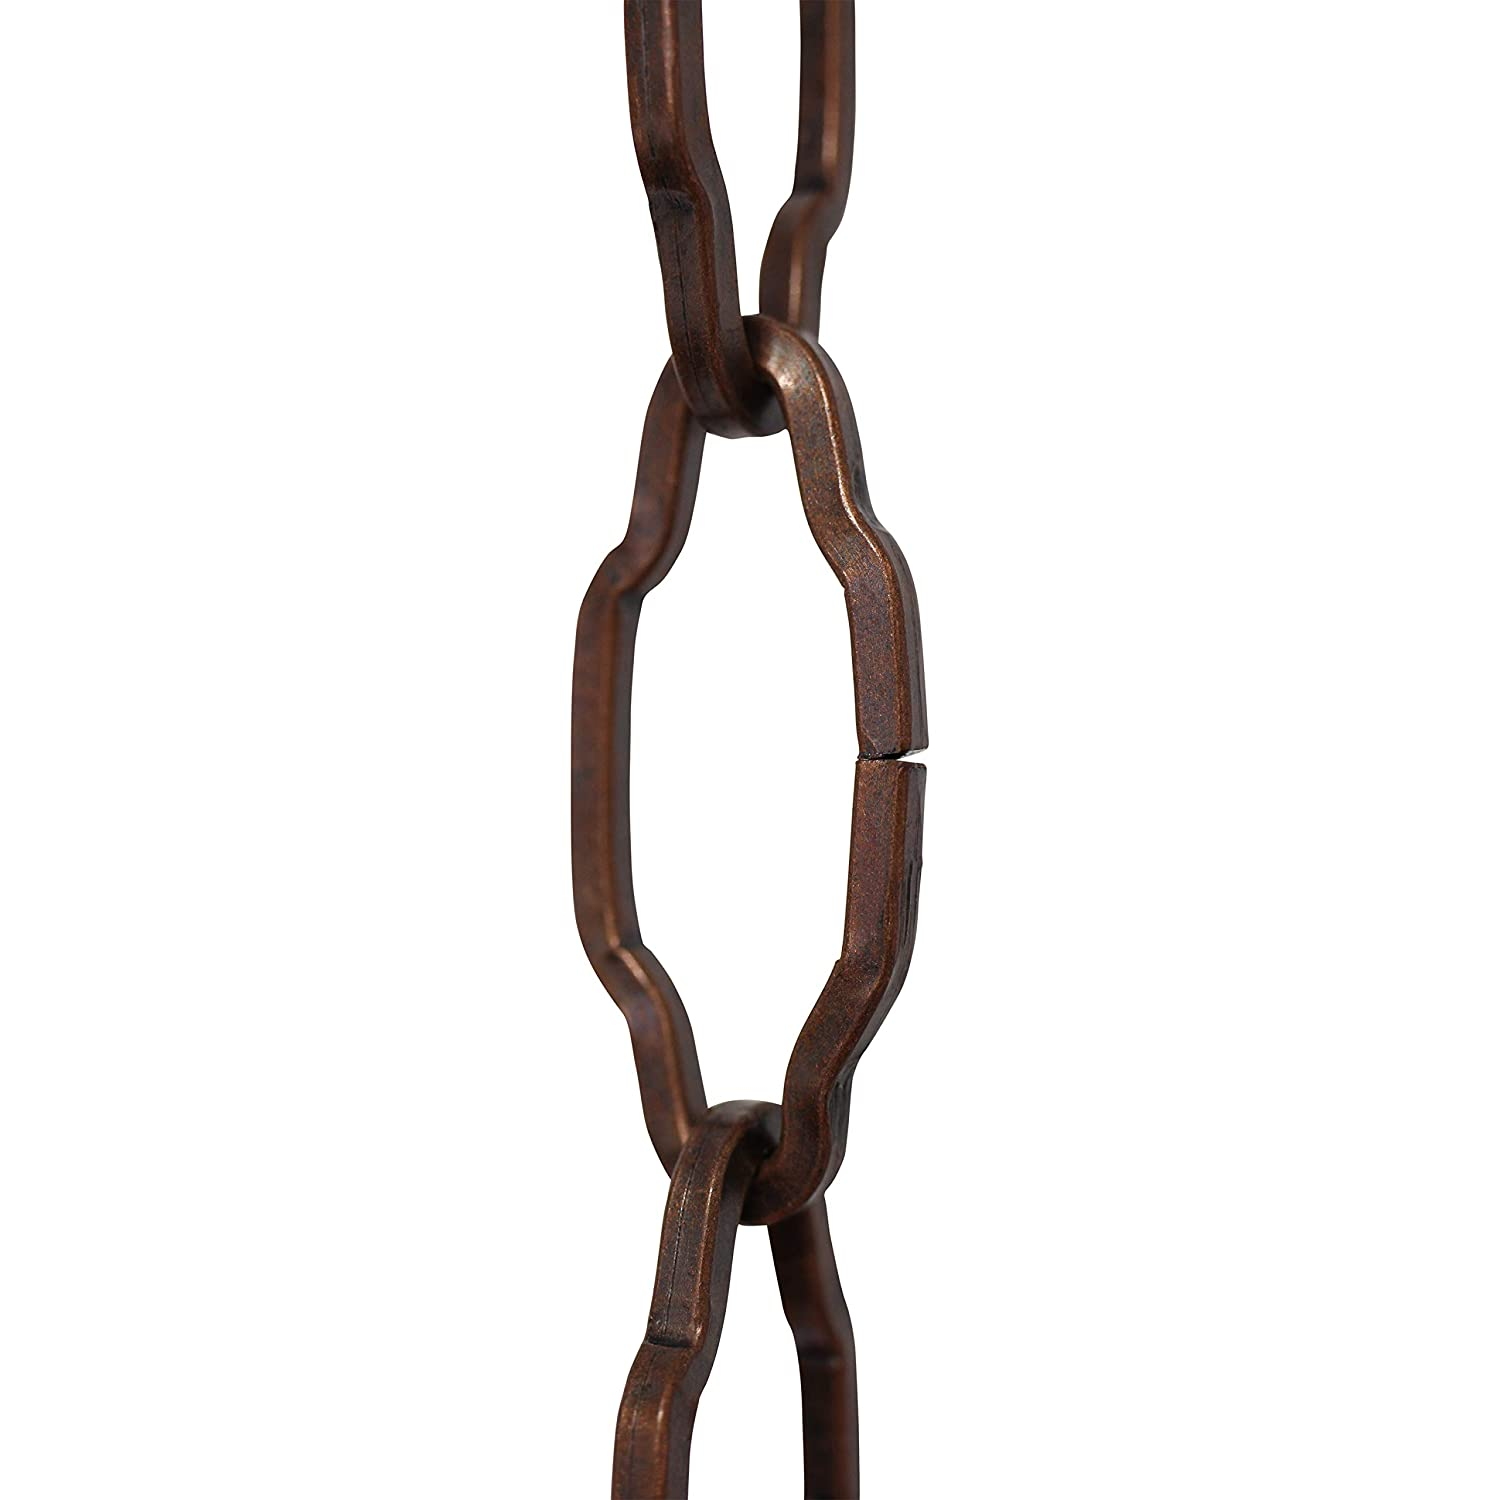 RCH Hardware CH-S57-30-AC-3 3 Foot Increments 12 Gauge Decorative Solid Steel Motif Link Fixture Chain Antique Copper Finish